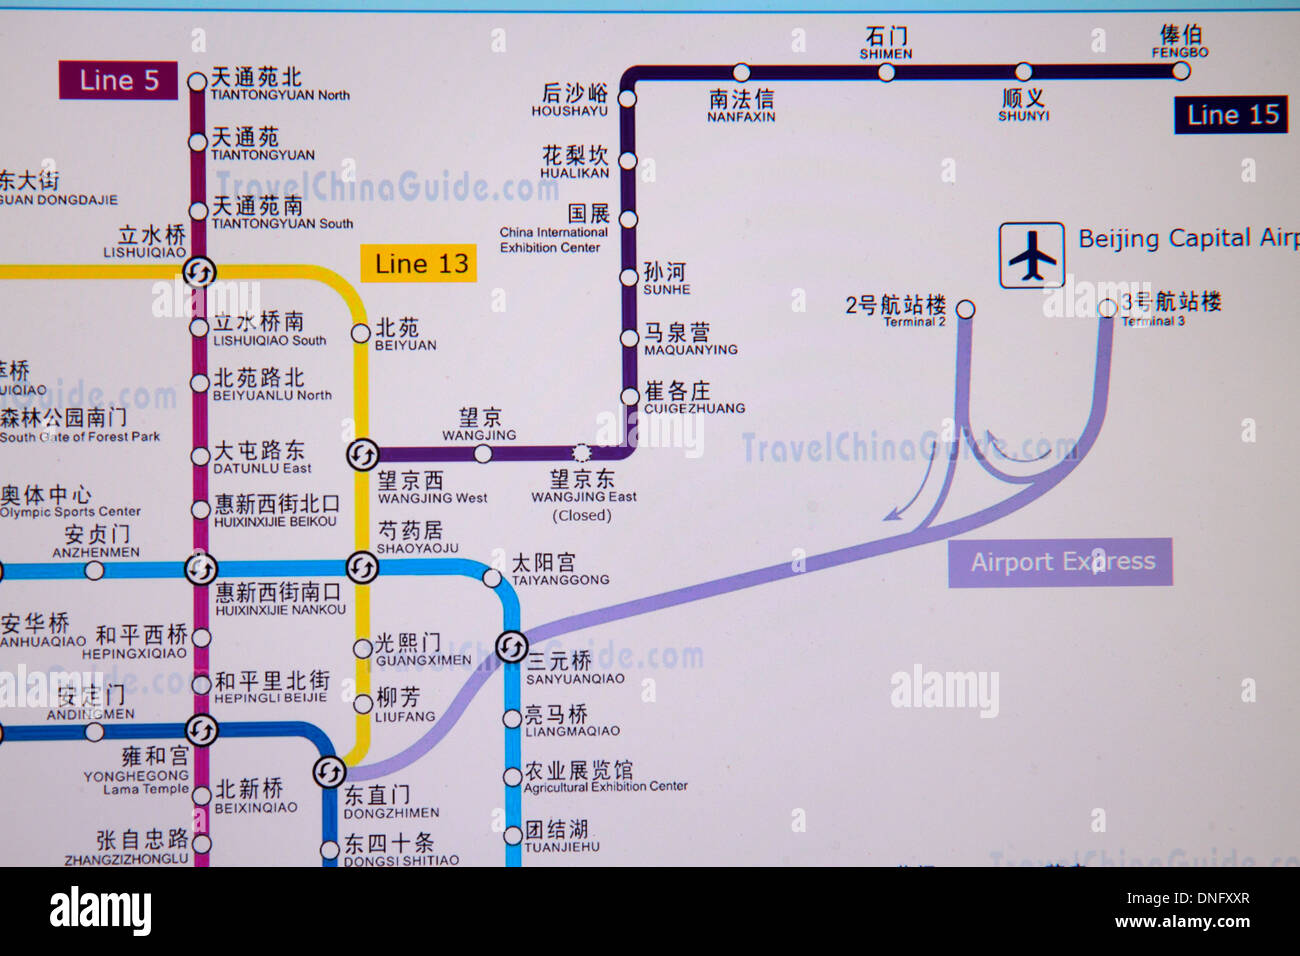 likewise Beijing Capital Airport Shuttle Bus  Lines  Schedule    Map also Beijing Subway Planning Map   China 2013 in 2018   Pinterest as well Beijing Airport Express Schedule   Light Rail from to Beijing together with Beijing Subway Map   Beijing Subway Route and Timetable together with Beijing Capital International Airport terminal 3E map together with Beijing Railway Station  Using the Station  Maps  Transport moreover UrbanRail   > Beijing  Peking  Subway Map moreover  furthermore Beijing Hong Kong High Sd Railway   Train Route Map further Holiday Inn Exp Beijing Airport  China   Booking together with Beijing Subway   Metro Lines  Schedule  Tickets additionally Beijing Capital Airport Express Train  Ticket   Schedule  Map as well  as well Beijing China  puter monitor Beijing Subway system route map Stock further . on beijing airport express map